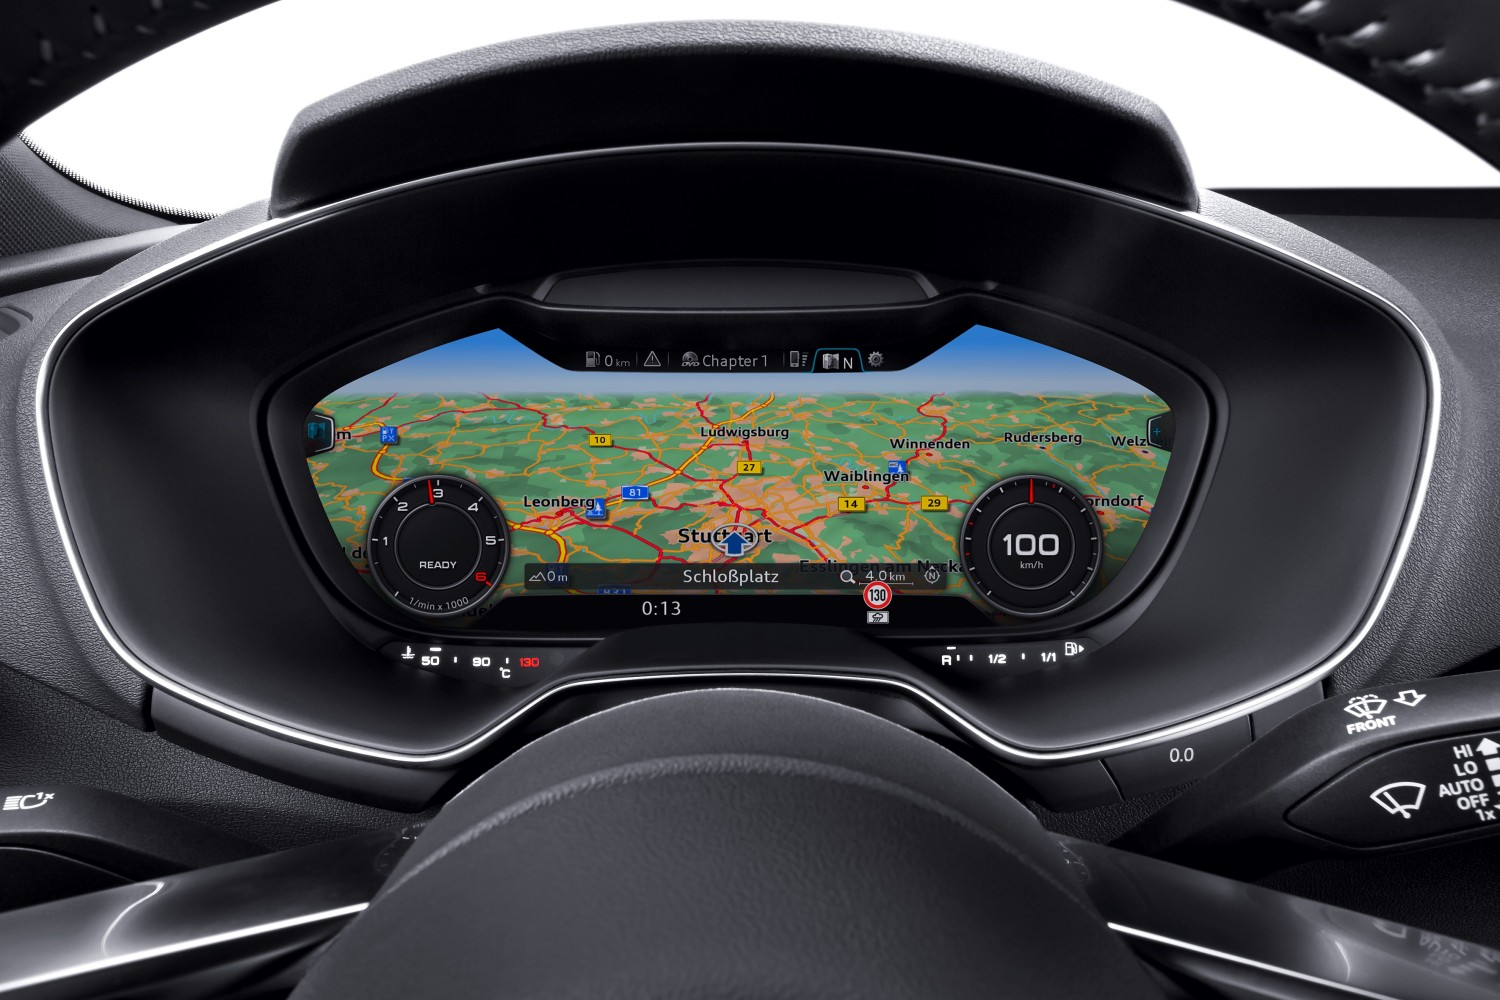 Bosch is working on glasses-free 3D displays for in-car use | TechCrunch